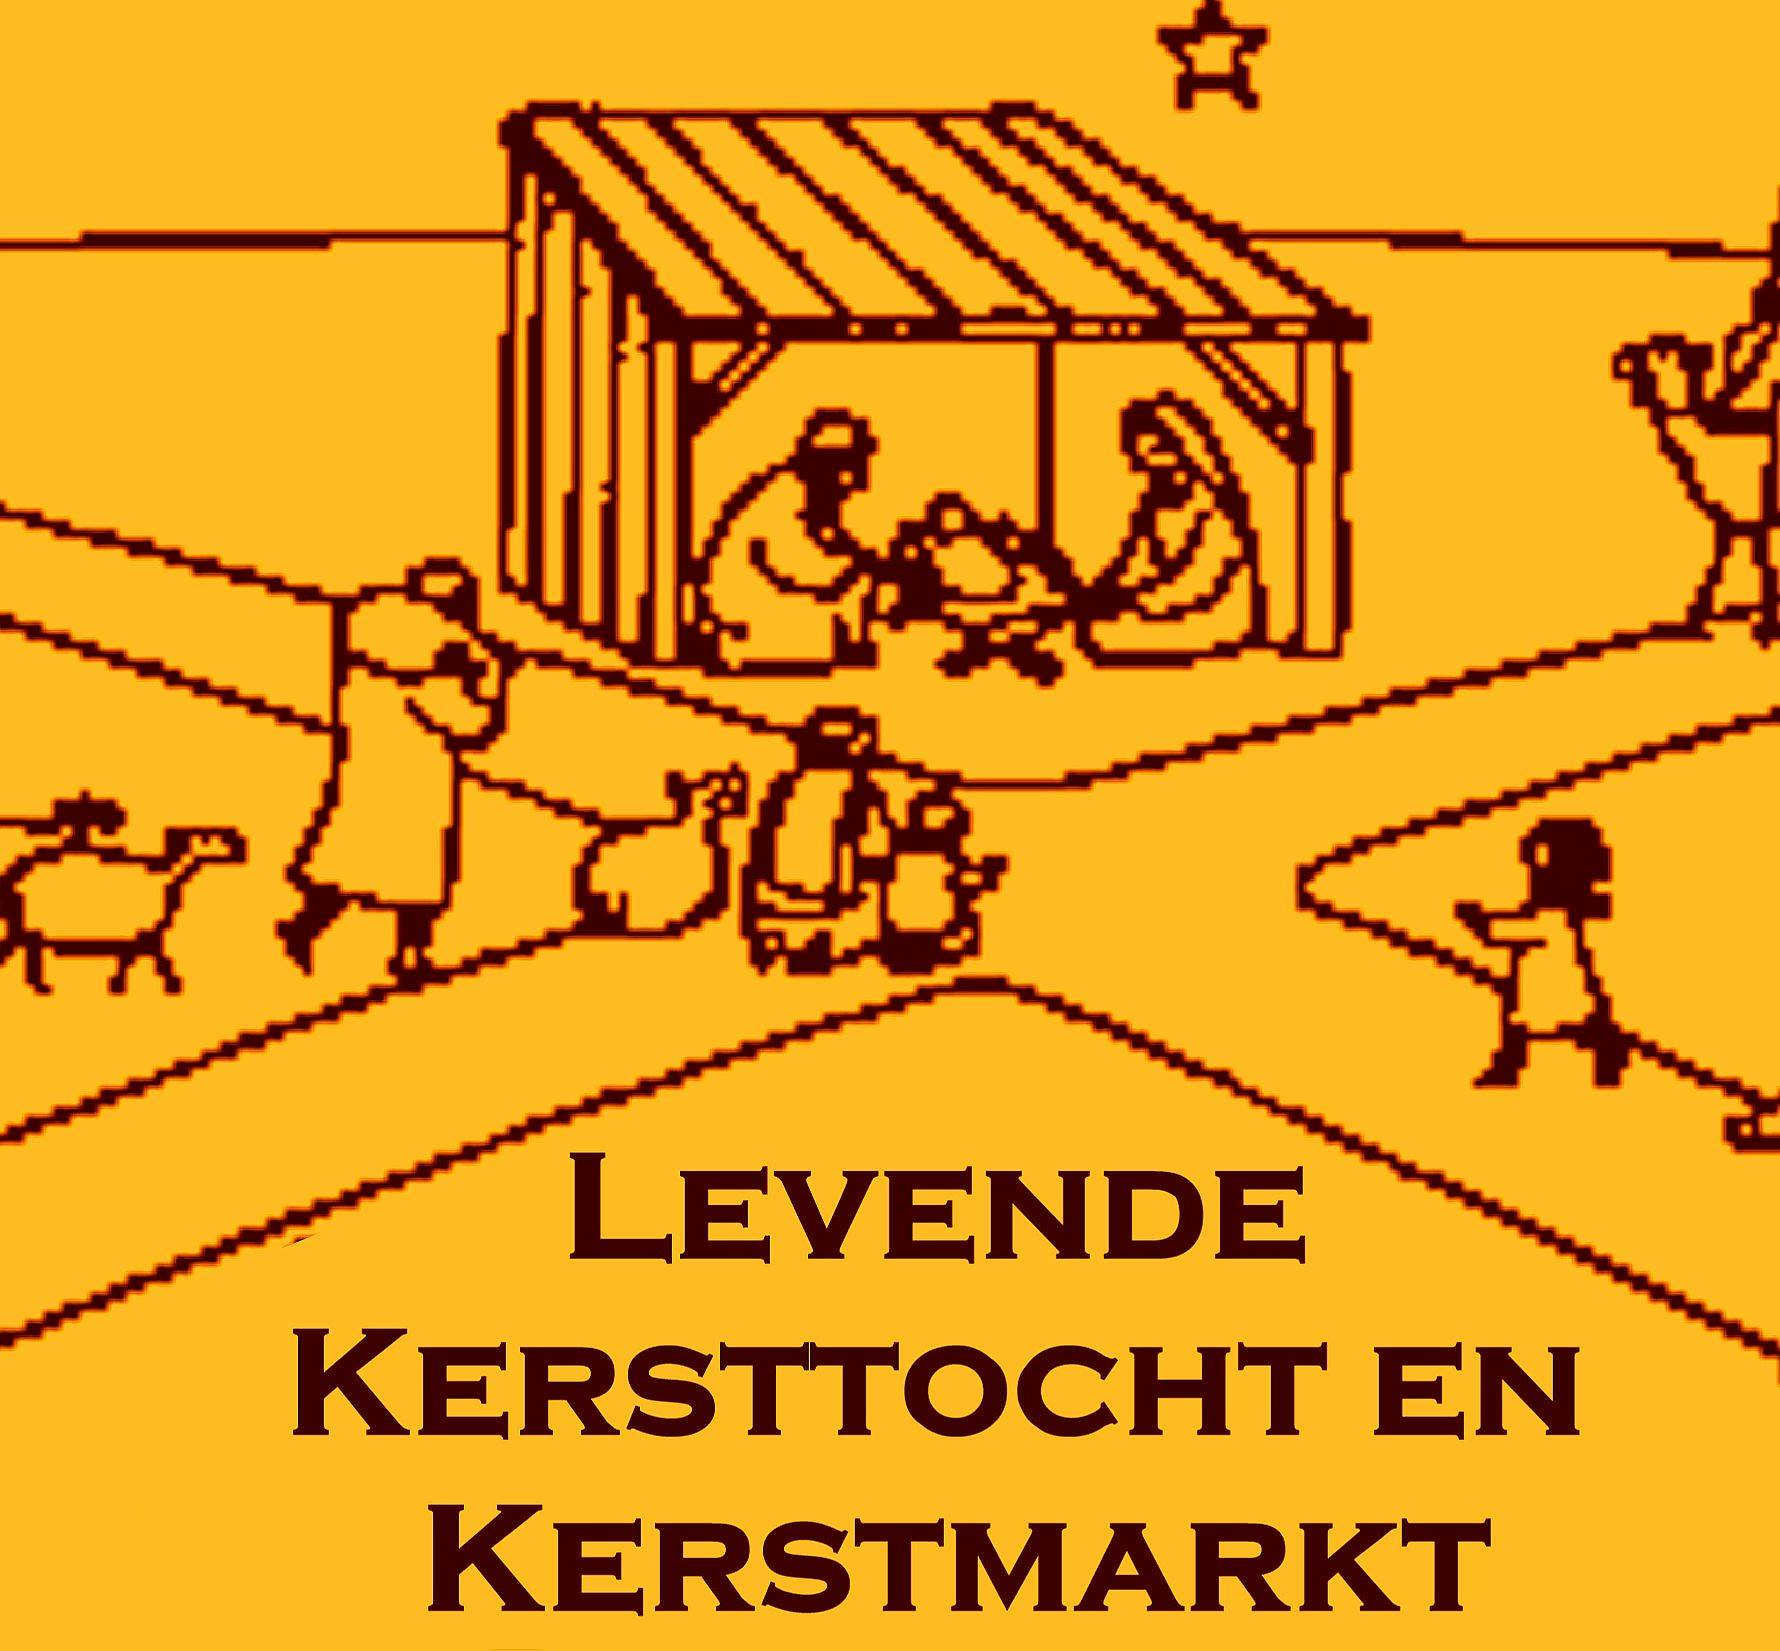 Levende kersttocht en kerstmarkt